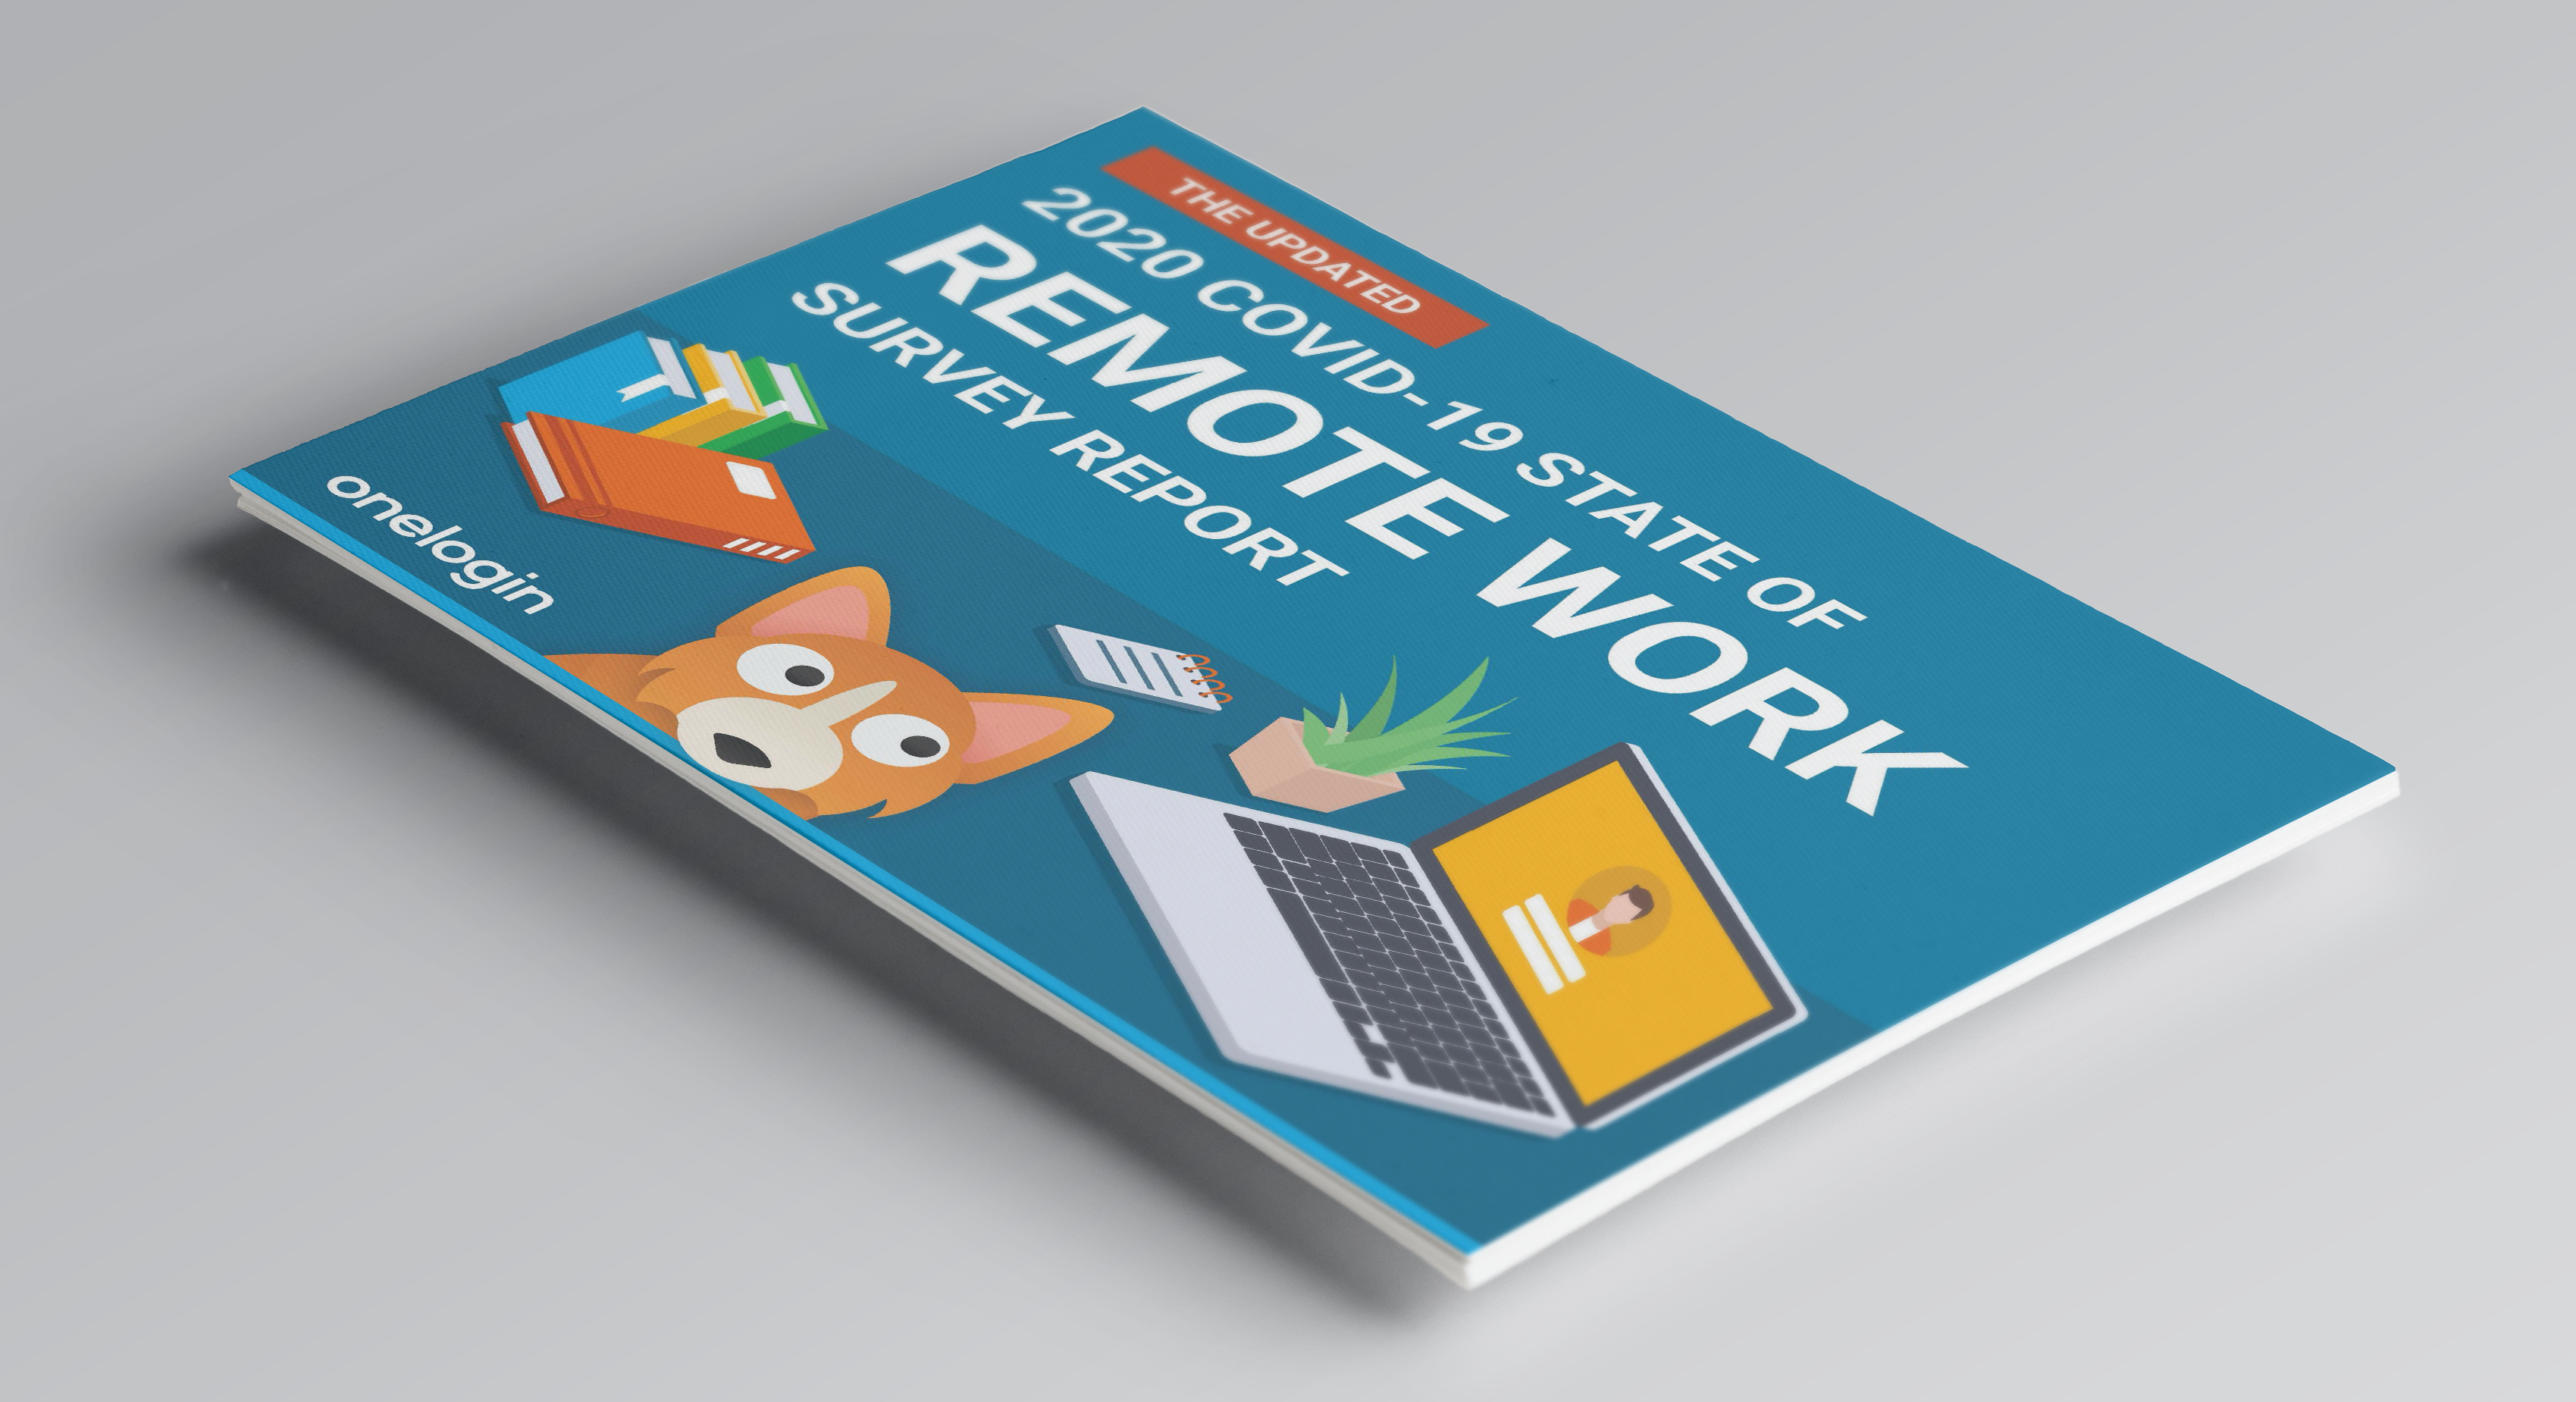 The Updated 2020 COVID-19 State of Remote Work Survey Report